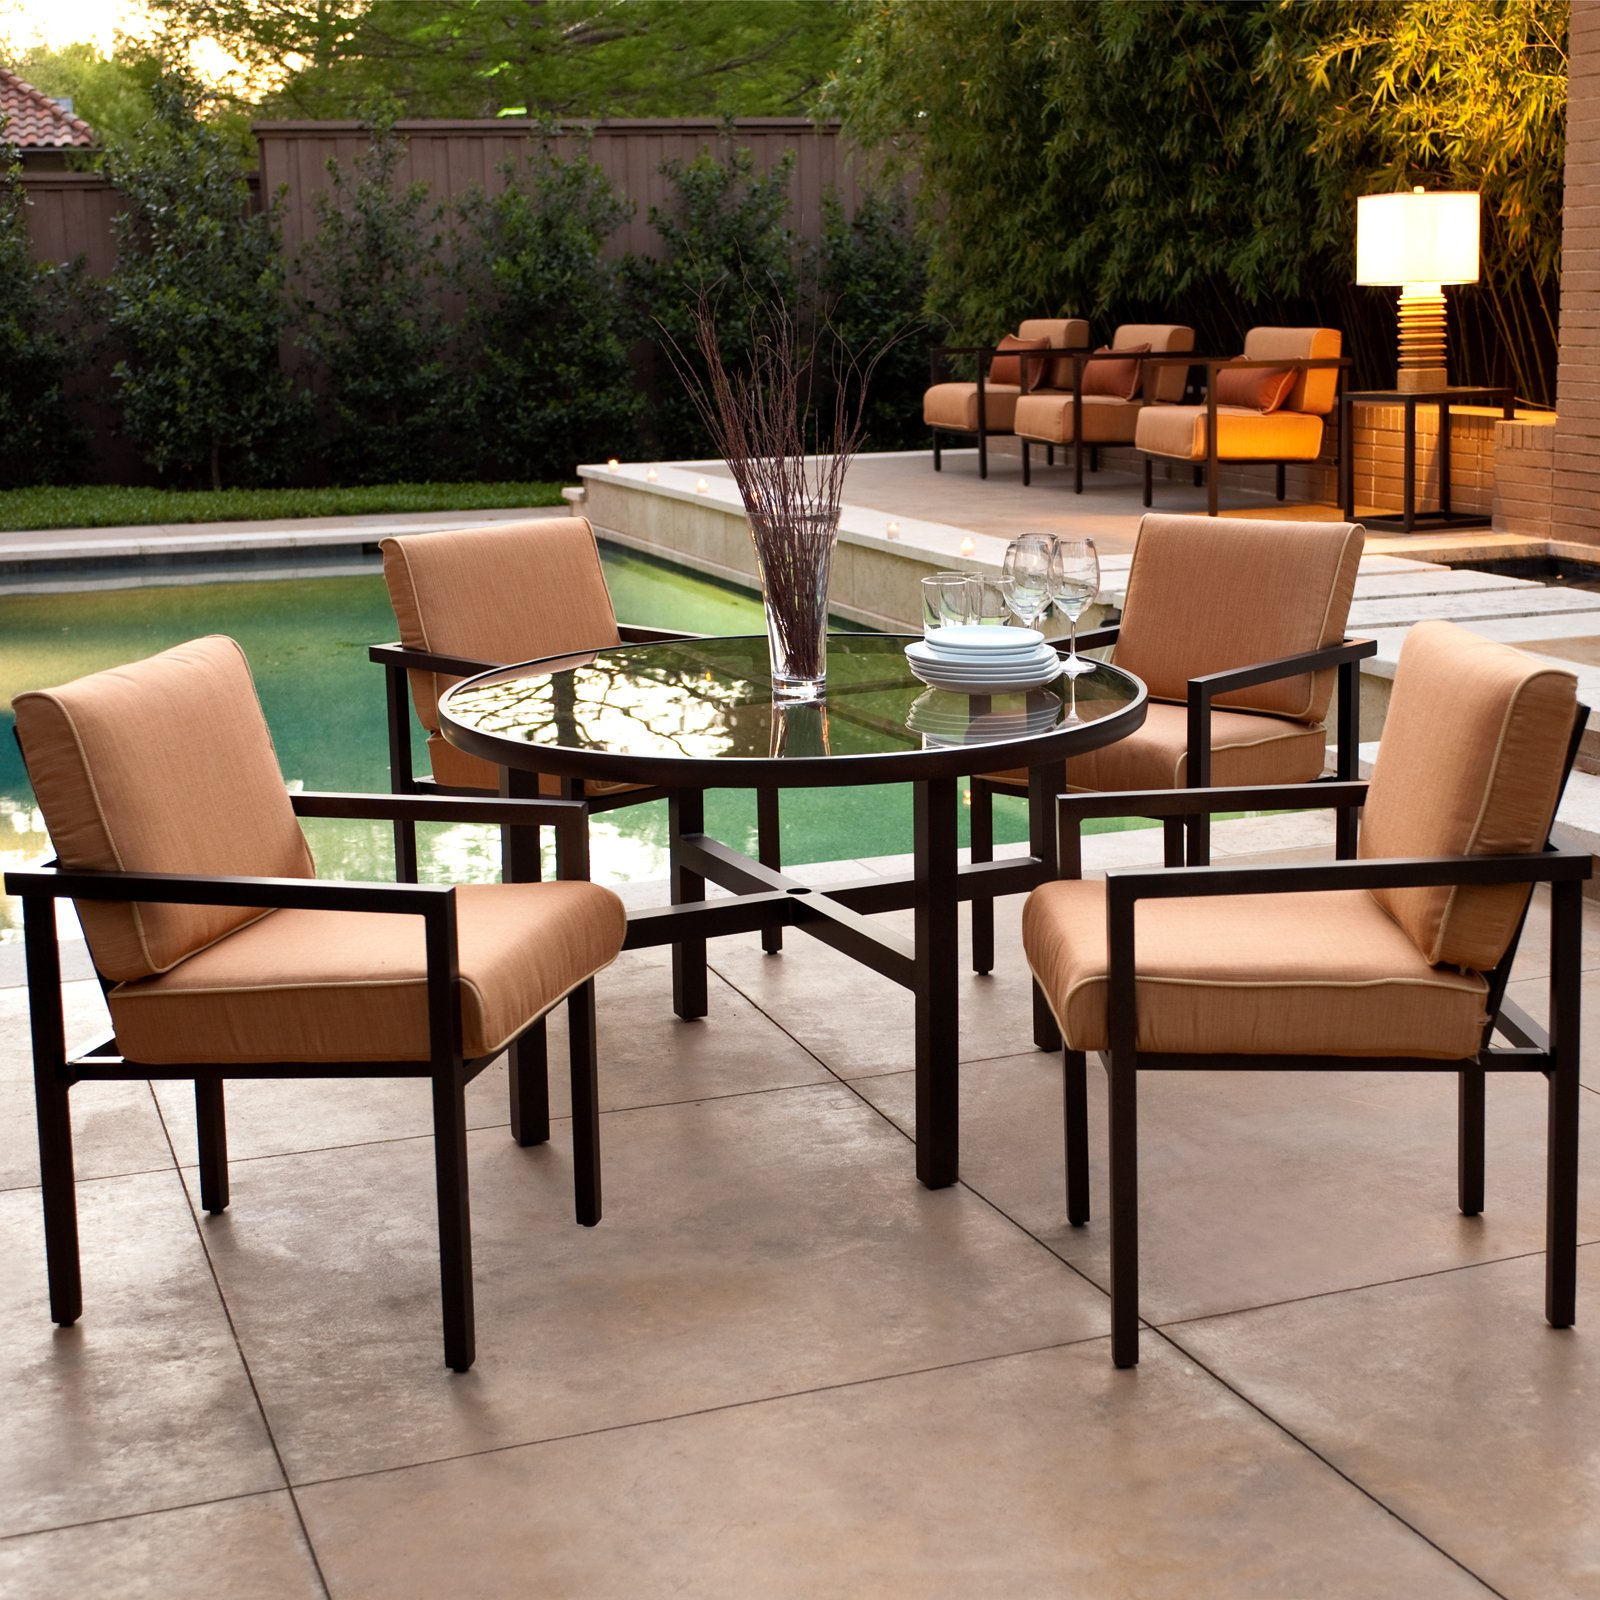 Places to go for affordable modern outdoor furniture for Affordable outdoor dining sets